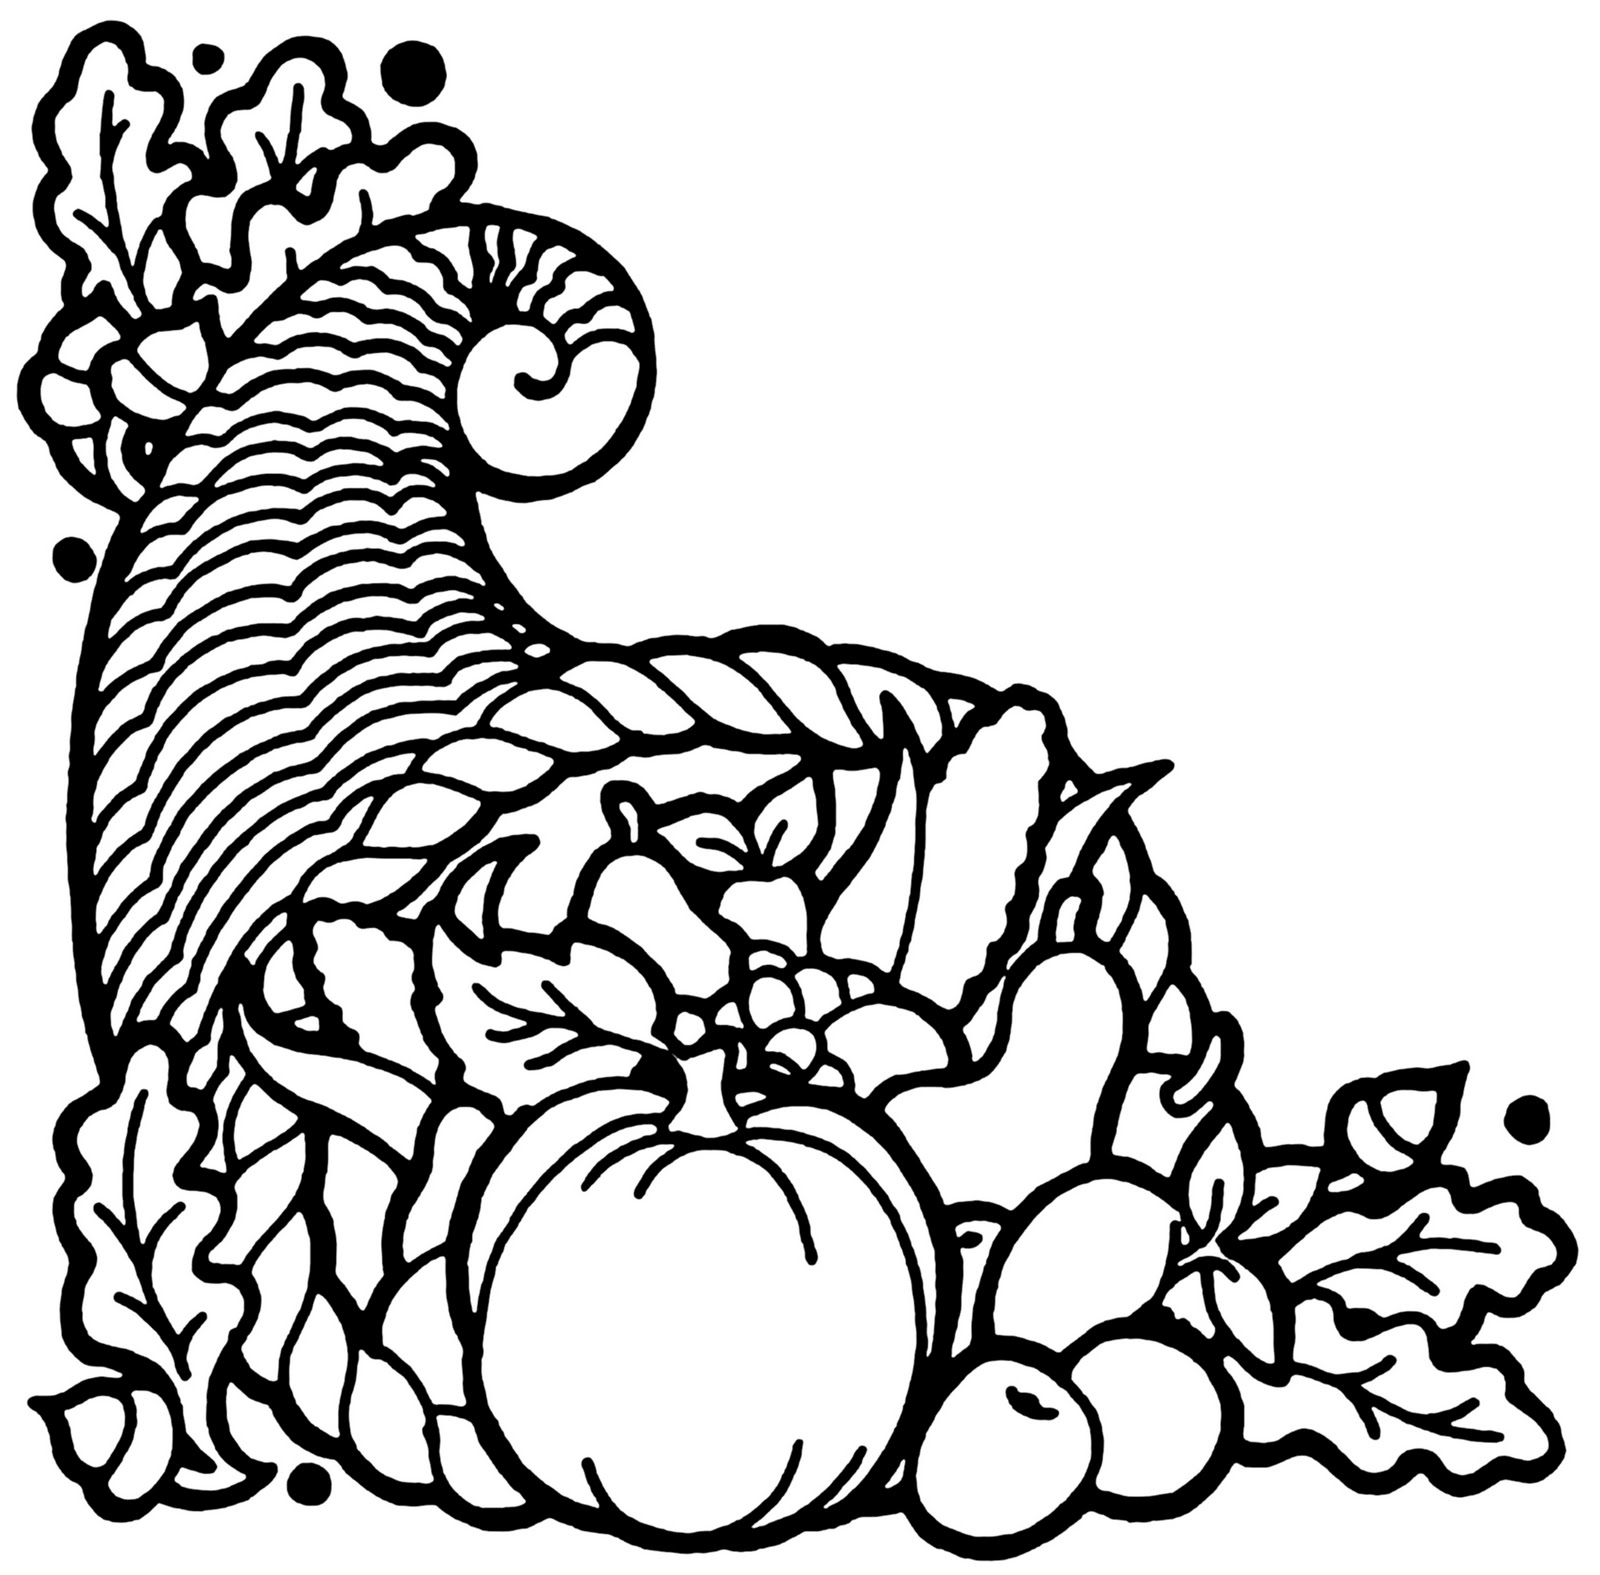 Thanksgiving Cornucopia Drawing